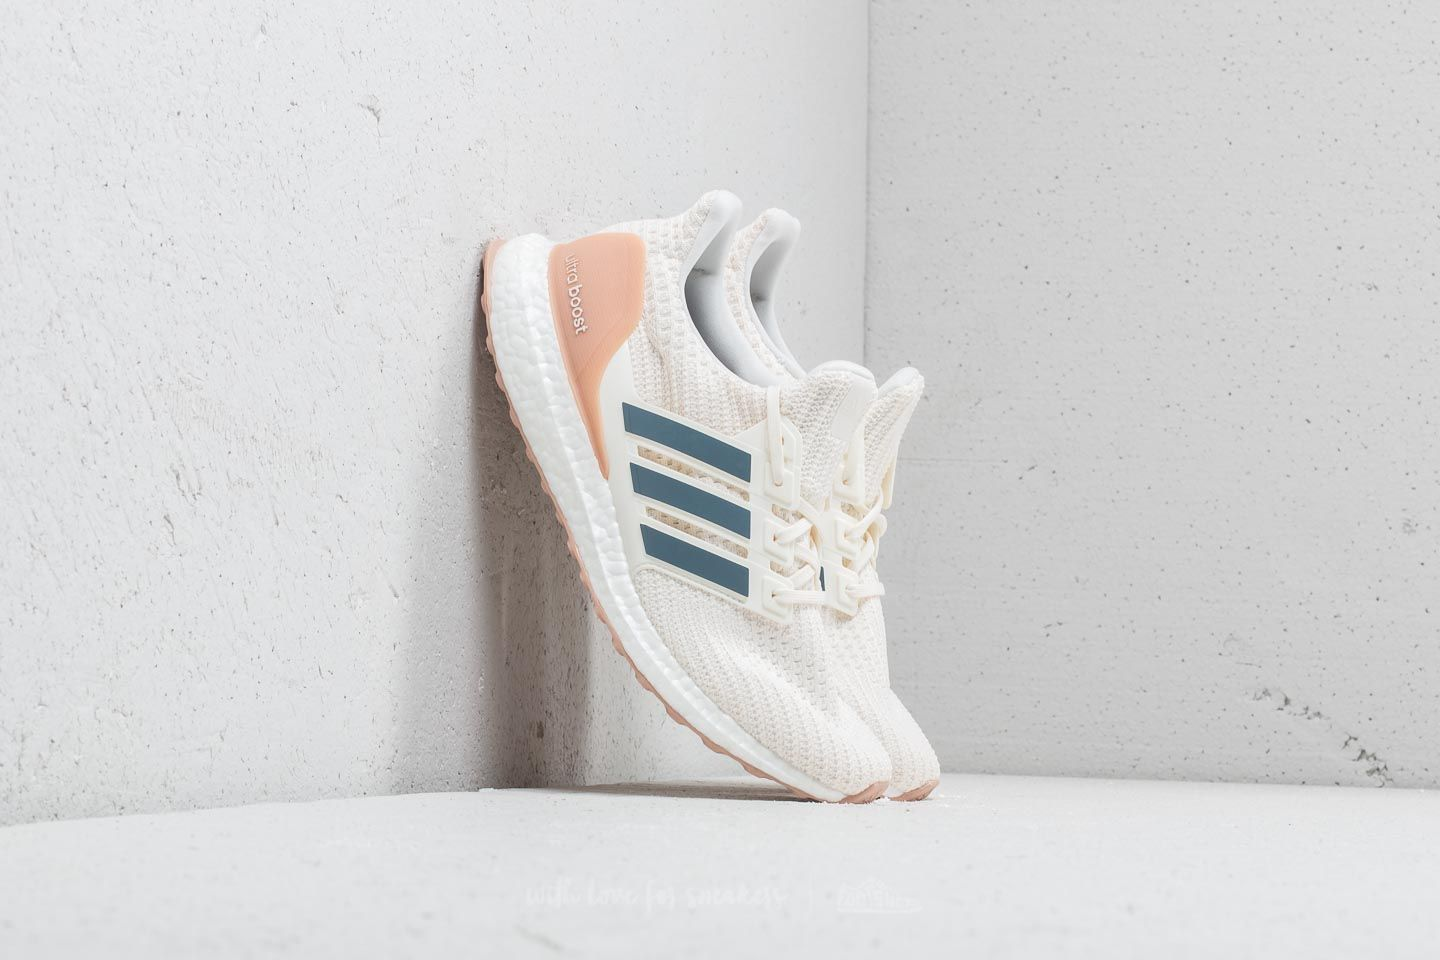 adidas Ultraboost Cloud White/ Tech Ink/ Vapour Grey